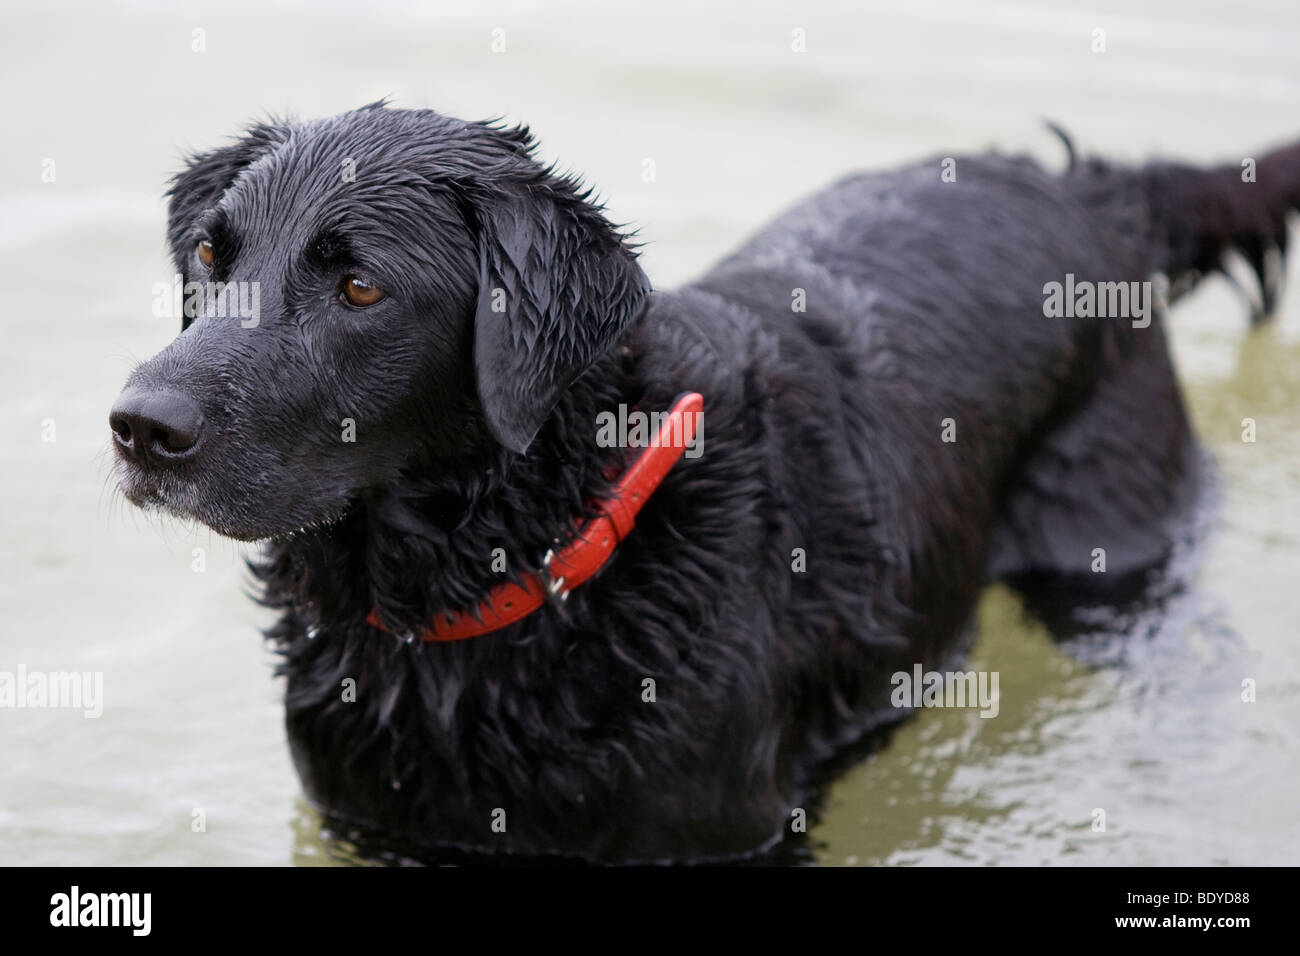 Gun dog, Black Labrador in water - Stock Image